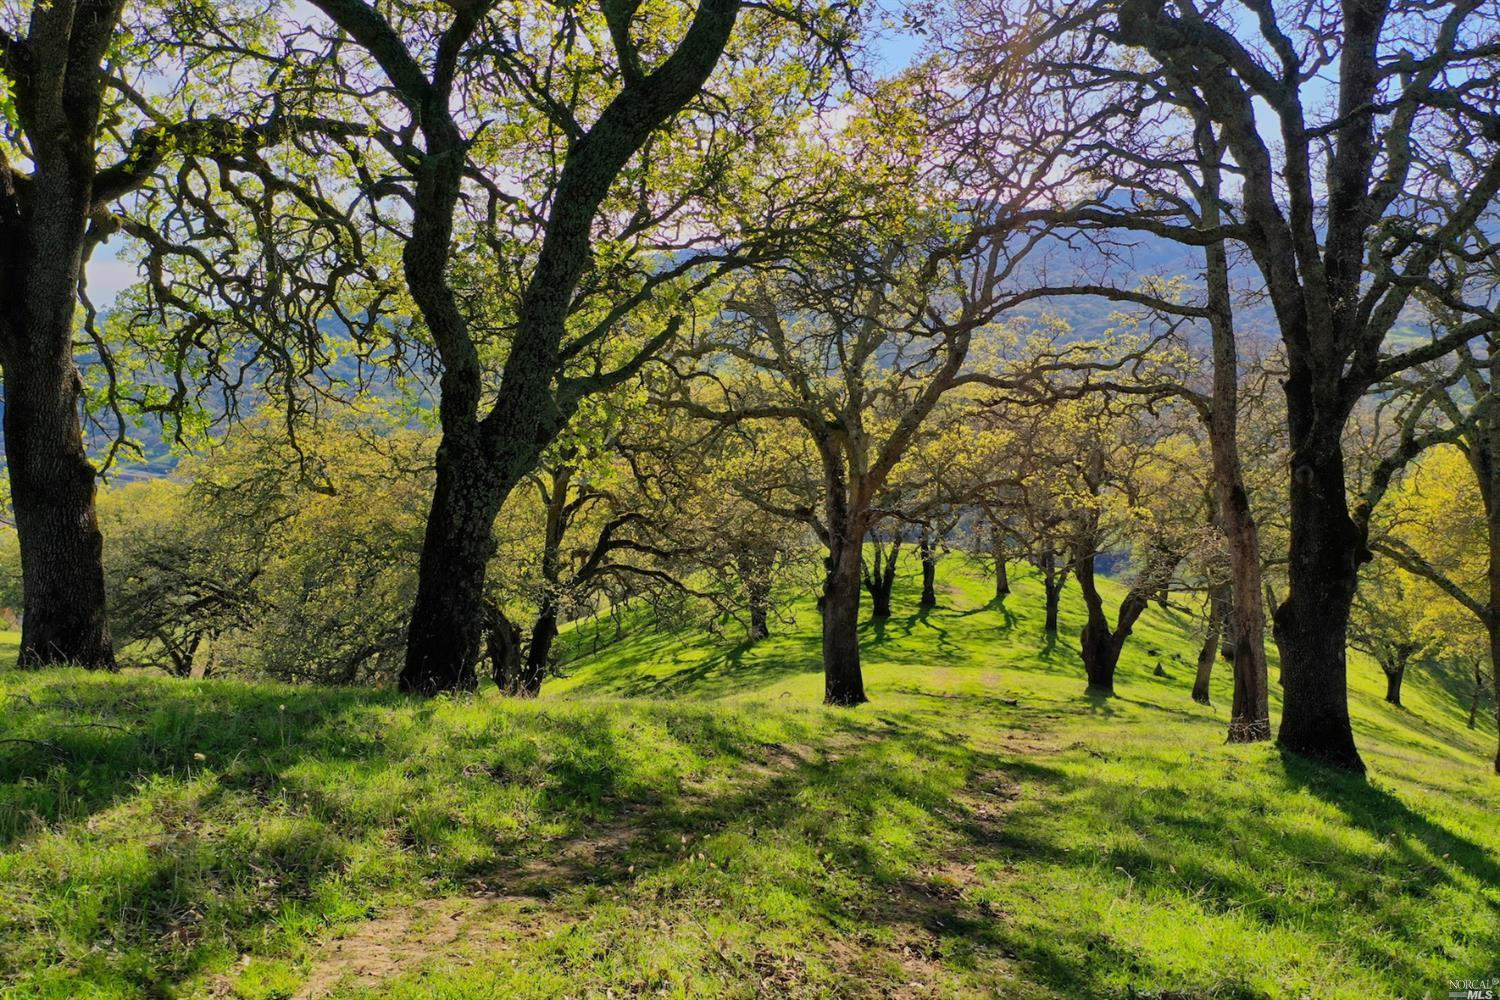 A Premium Lifestyle awaits, right off the I-680 / I-80 corridor in prestigious lower Wooden Valley, in the Napa Valley AVA. The 40+/- acre plot is located in an exclusive gated community on Okell Hill. As you drive through the heavy wrought iron gates you quickly realize why this is a popular place to build a private Vineyard Estate. The stunning 40+/- acres draws you in, as you look out over the breathtaking views of rolling green hills, vineyards, the Suisun Bay & even Mount Diablo! Others have already snapped up neighboring plots of land. (Currently there is a lot line adjustment being done, where 4+/- acres will be added to an adjacent lot). Neighboring vineyards are reliably producing fruit of very high quality & is rivaling that from